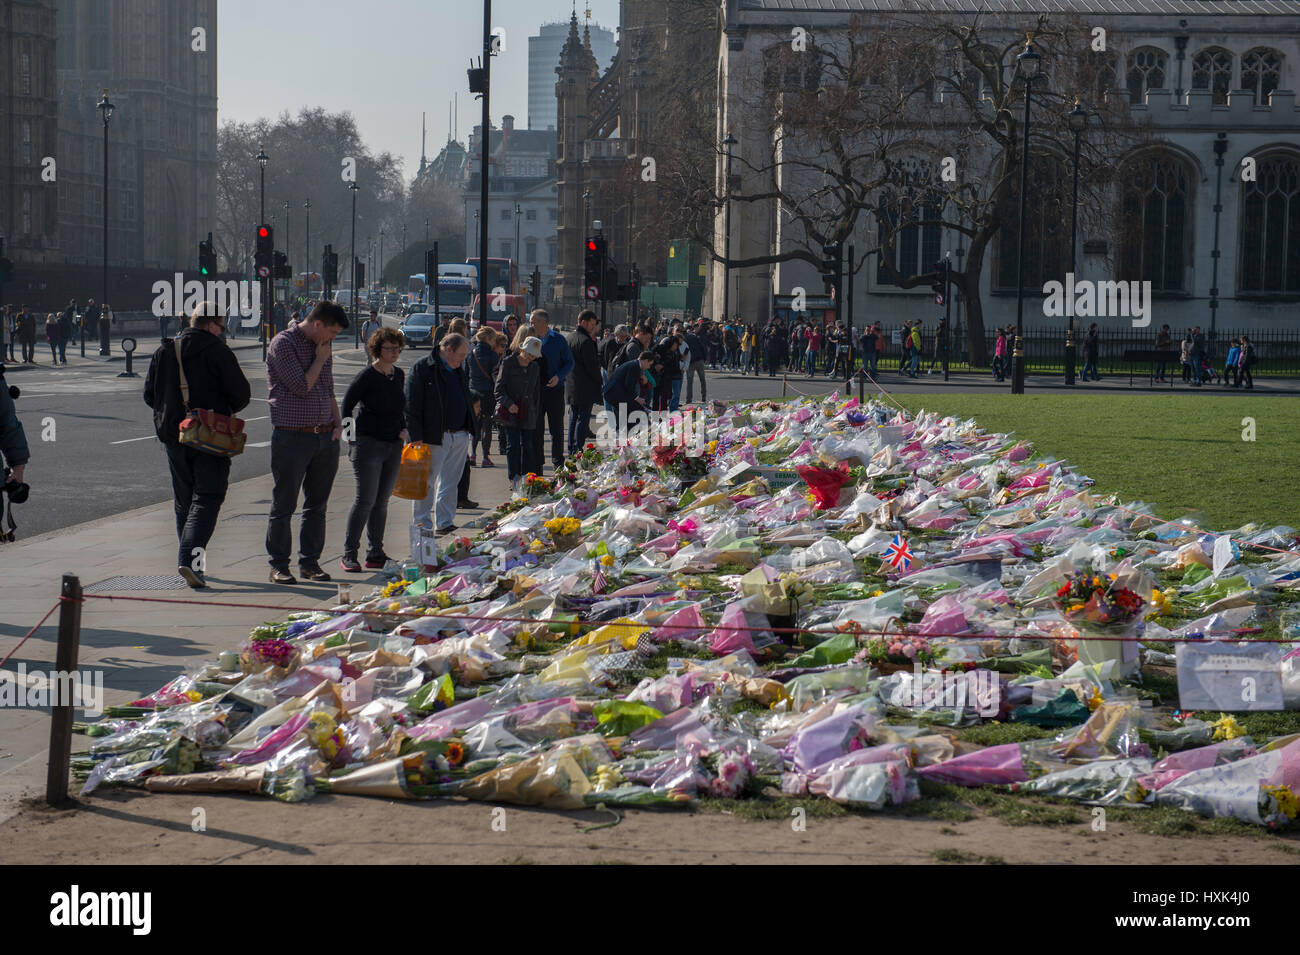 London. 28th March 2017. Flowers laid in Parlament Square in remembrance of the victims of the terrorist attack - Stock Image